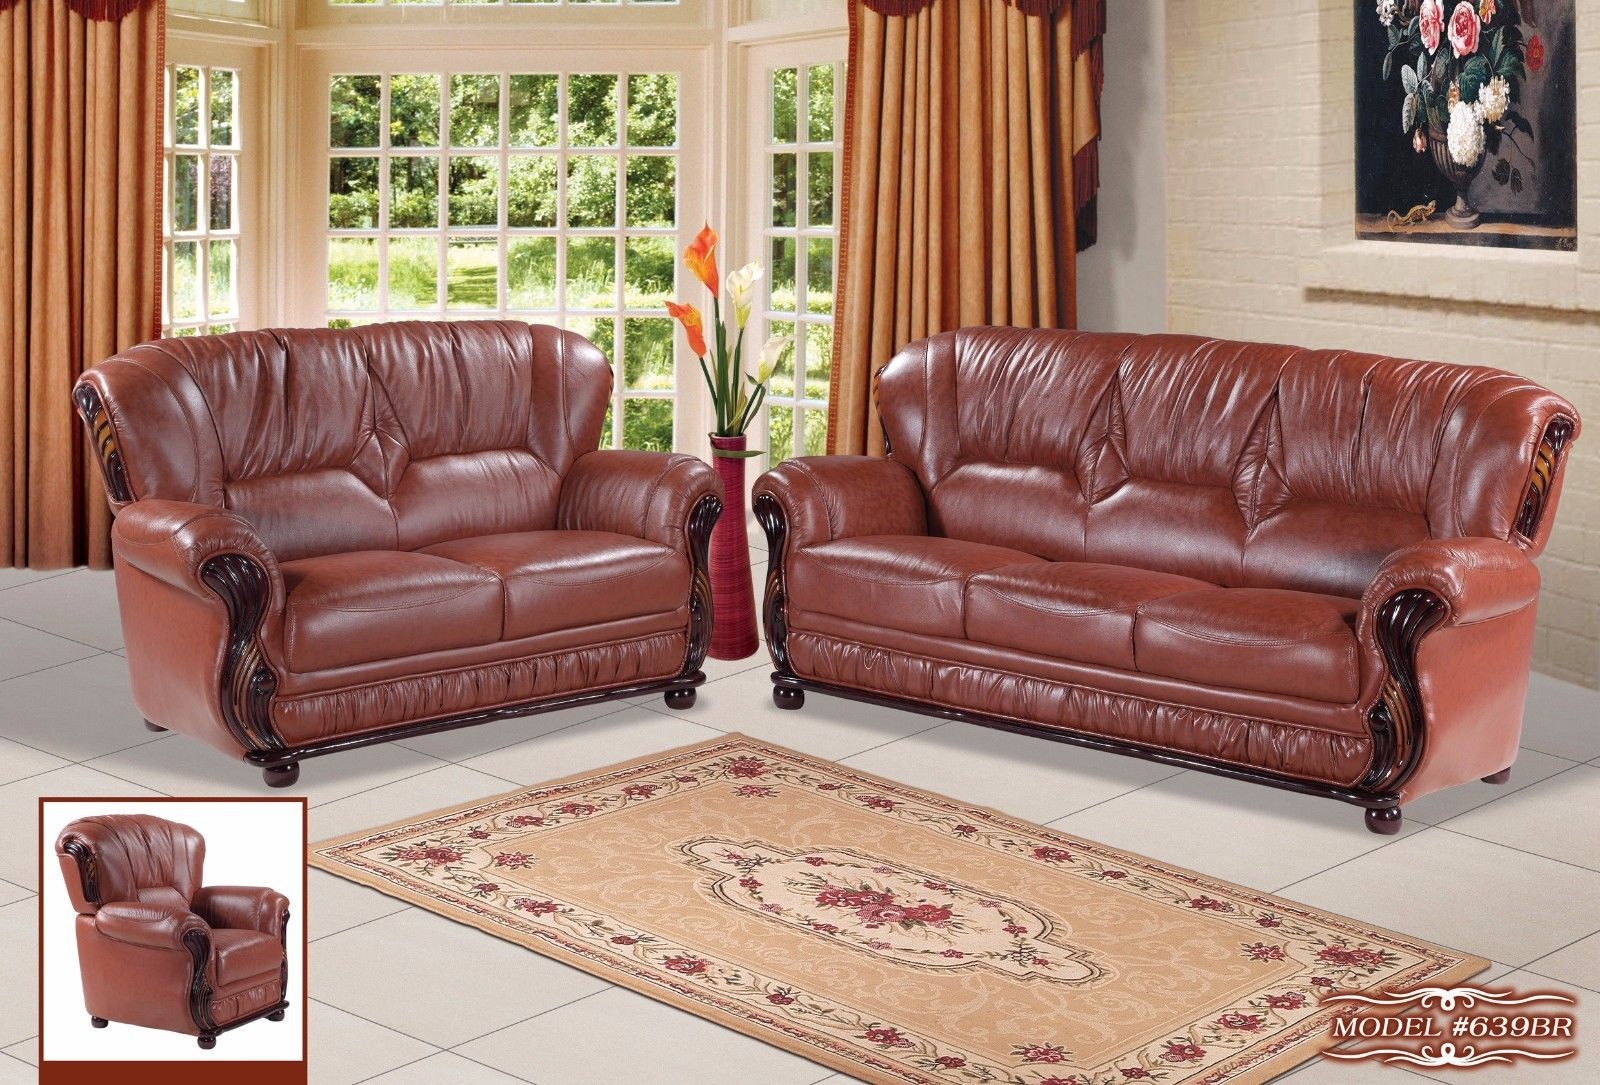 Meridian 639 Mina Living Room Set 2pcs in Brown Bonded Leather Traditional Style